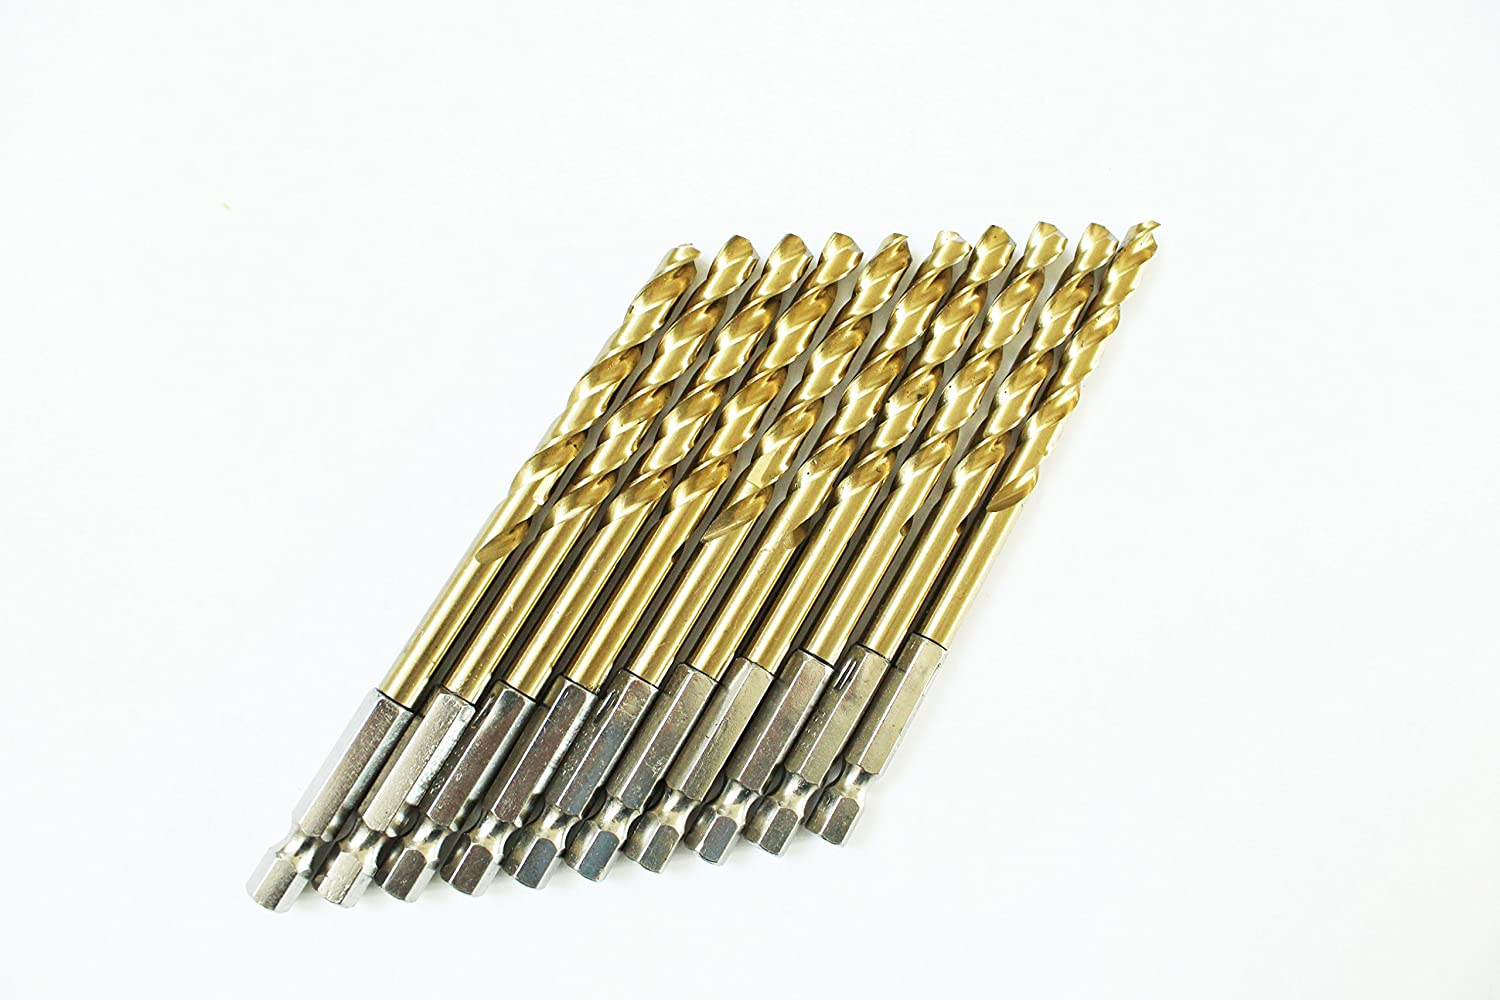 Aluminum Split Point,Drilling Mild Steel 5Pcs Pack 1//2 Inch HSS Titanium Nitride Coated Jobber Length Drill Bit Hex Shank 135 Point Deg Pack in Plastic Bag Max-Power Tools Copper Zinc Alloy.